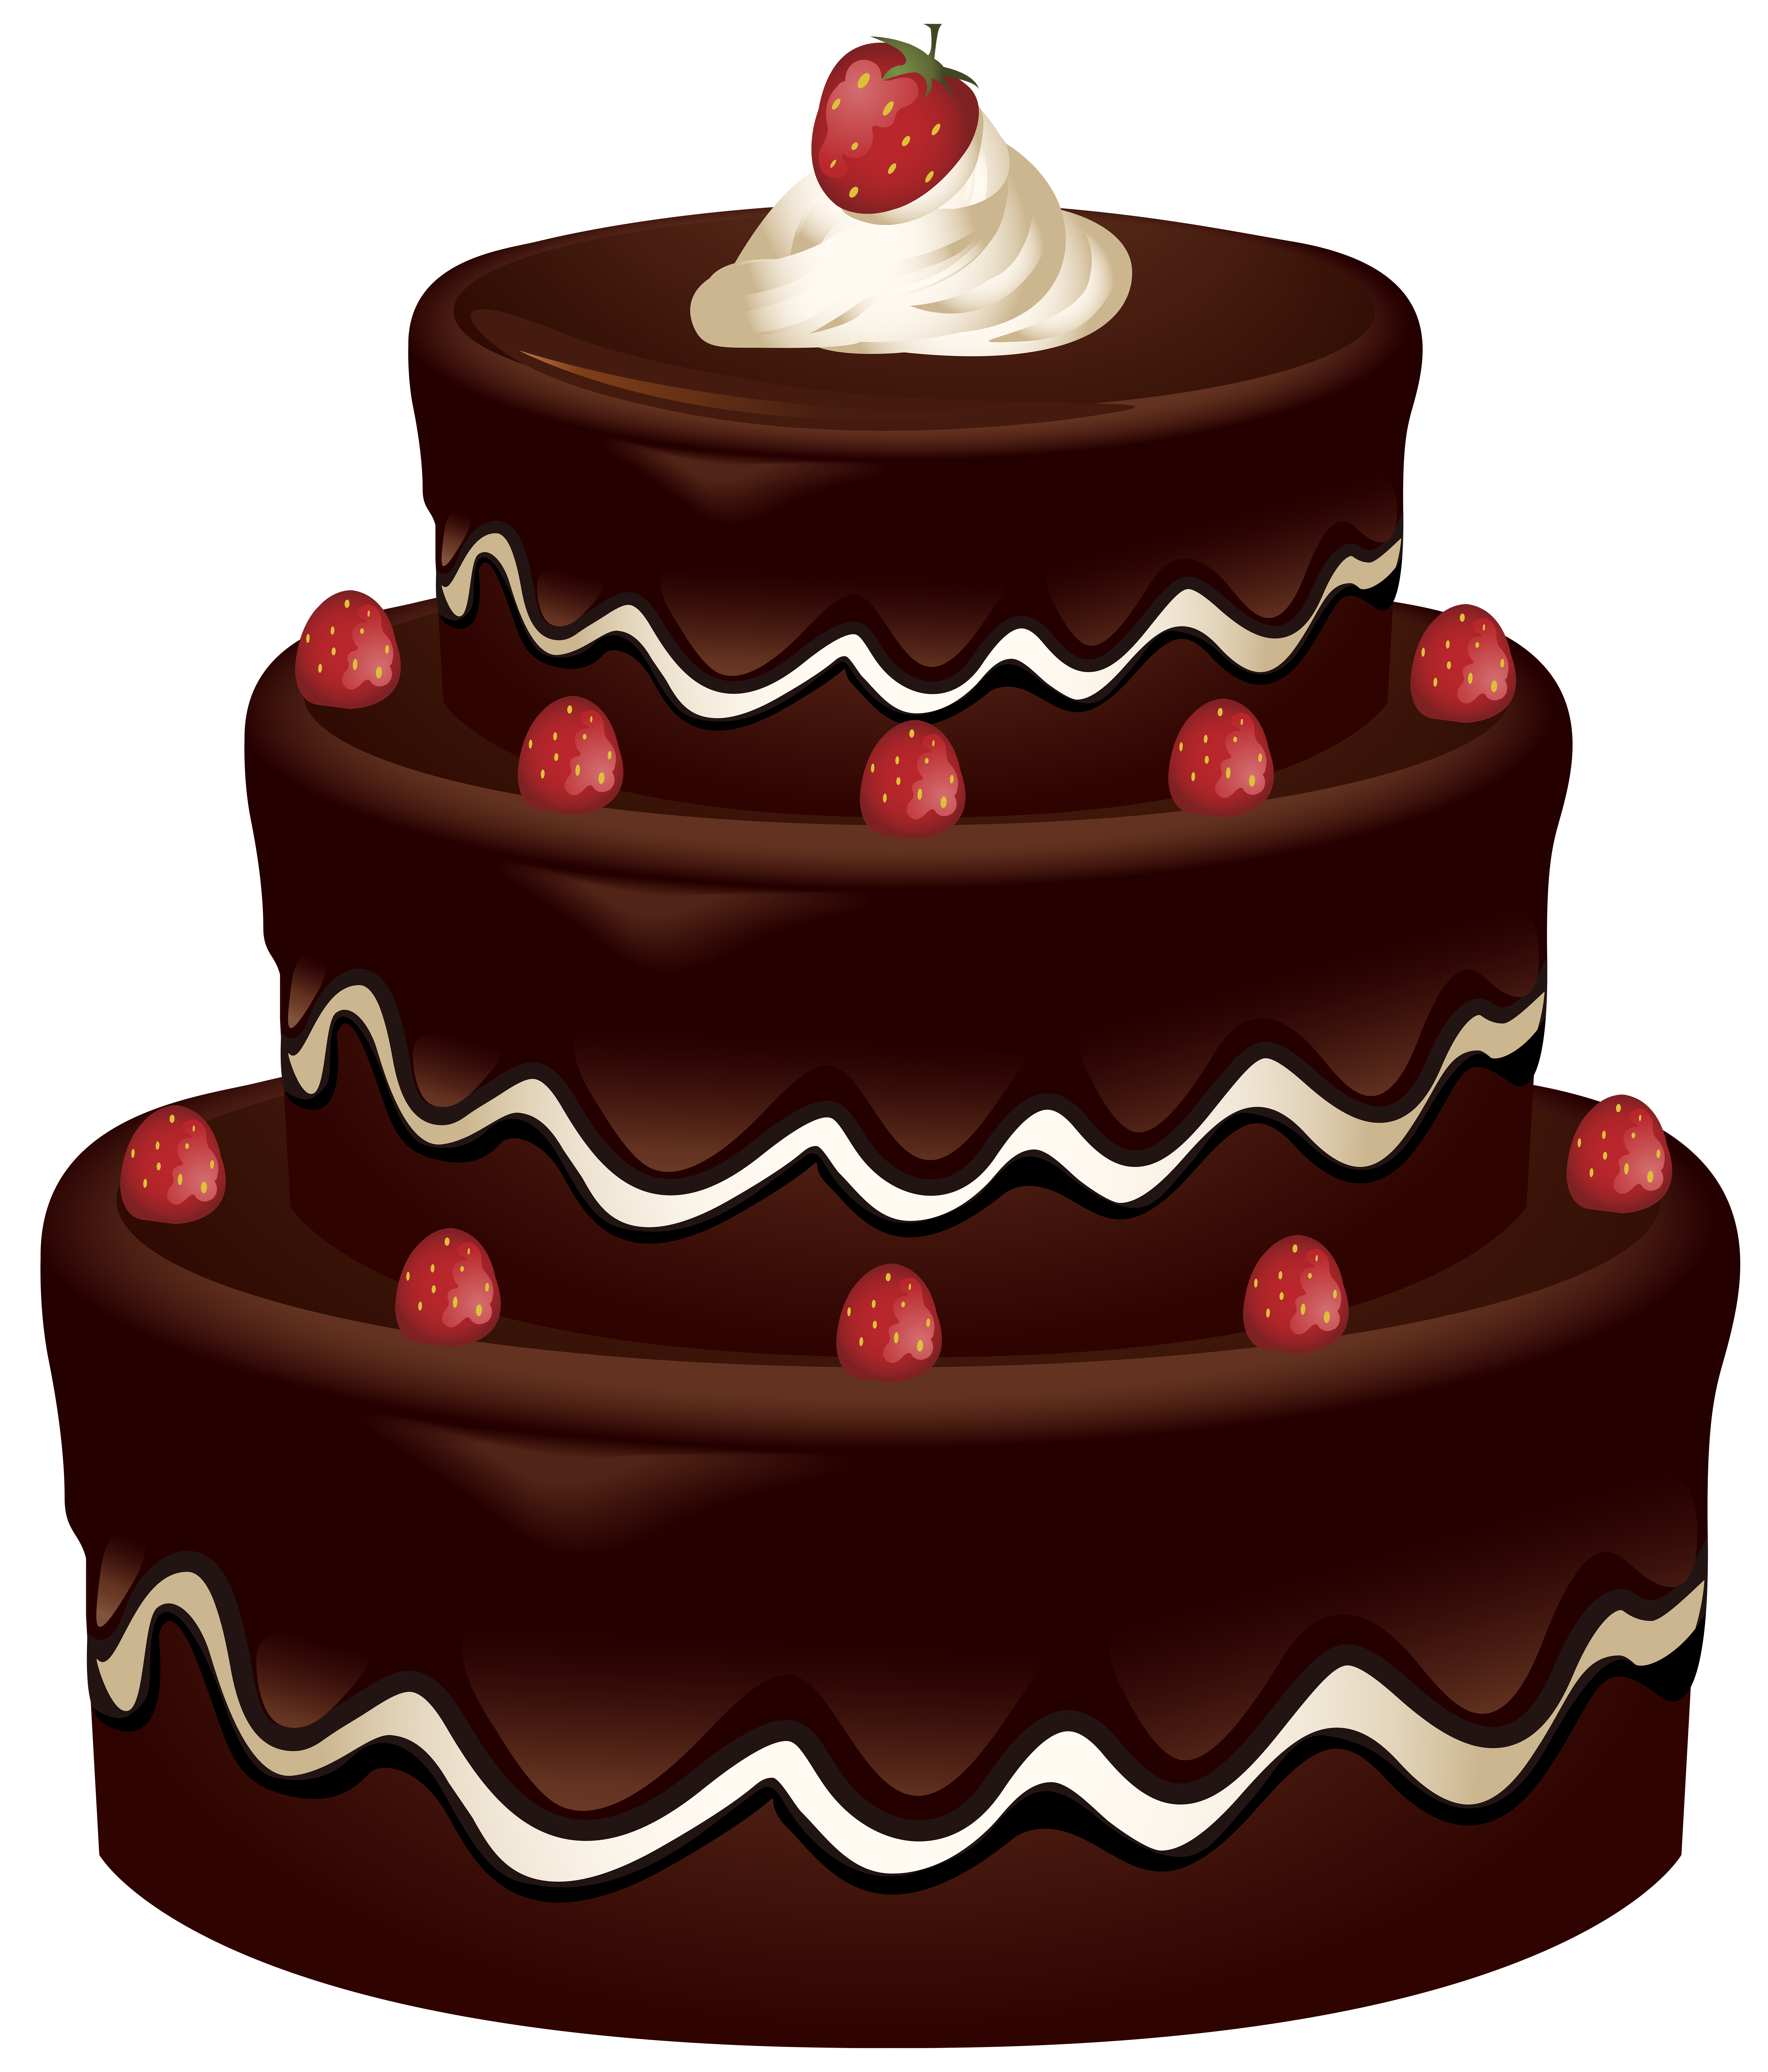 clip free download Clip art png image. Cake clipart.